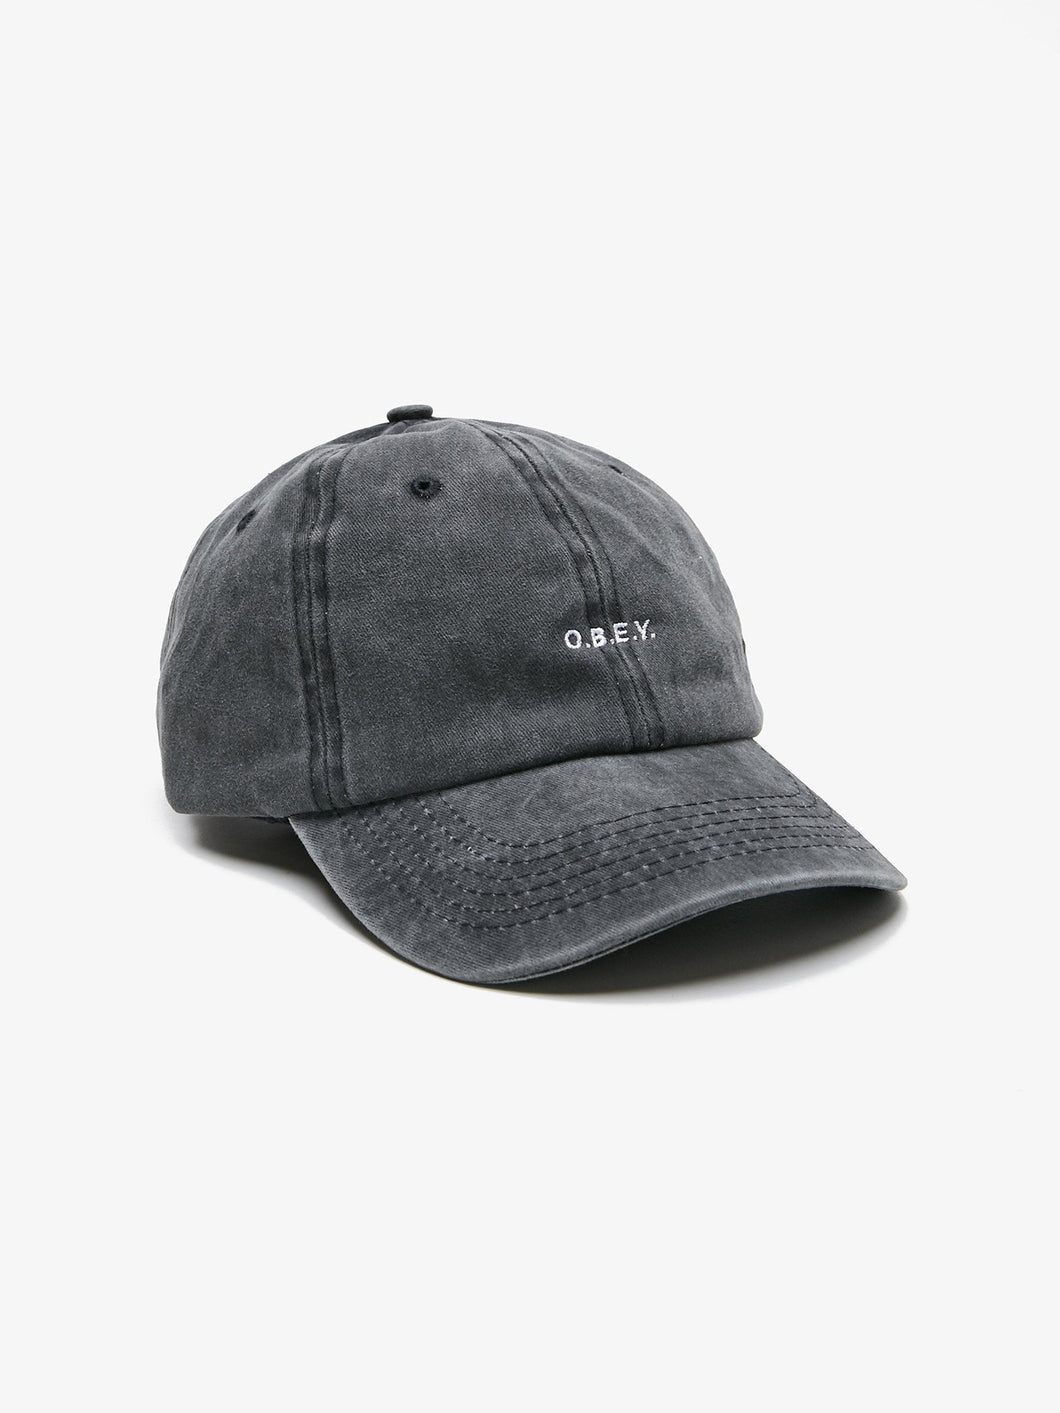 OBEY O.B.E.Y. 2 HAT // DUSTY BLACK-The Collateral